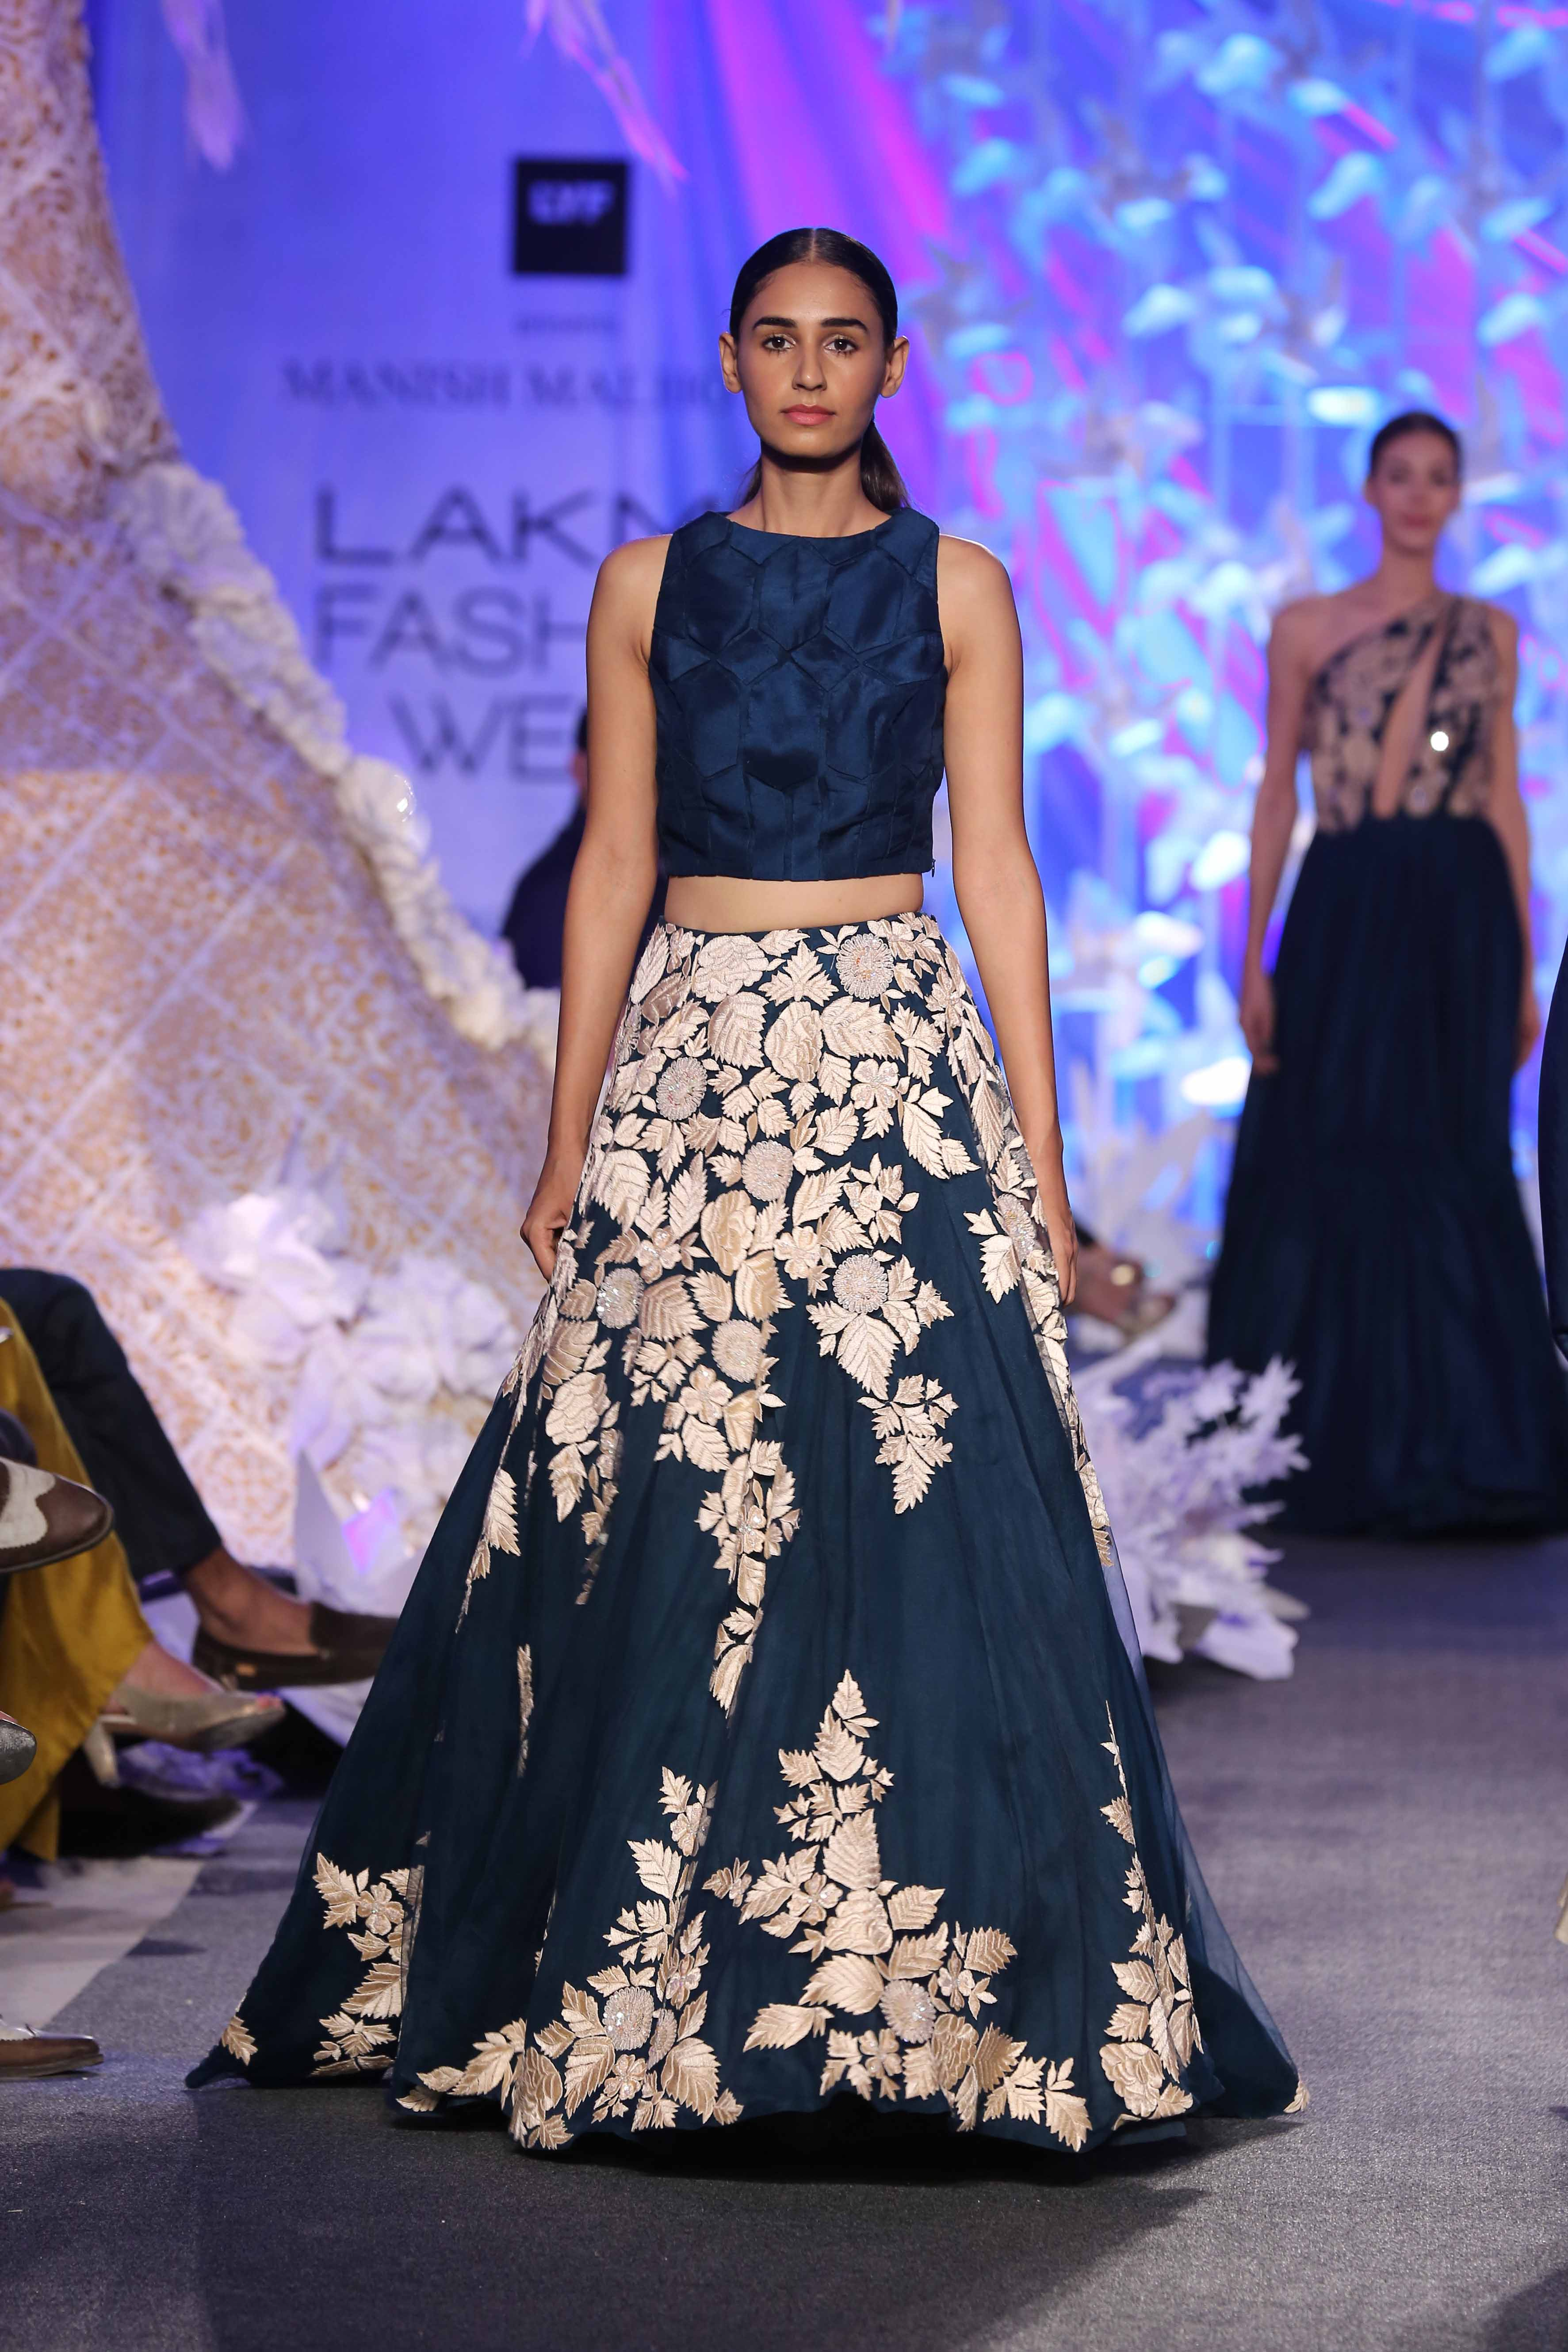 A model walking at Manish Malhotra's opening show for LFW SR 2016